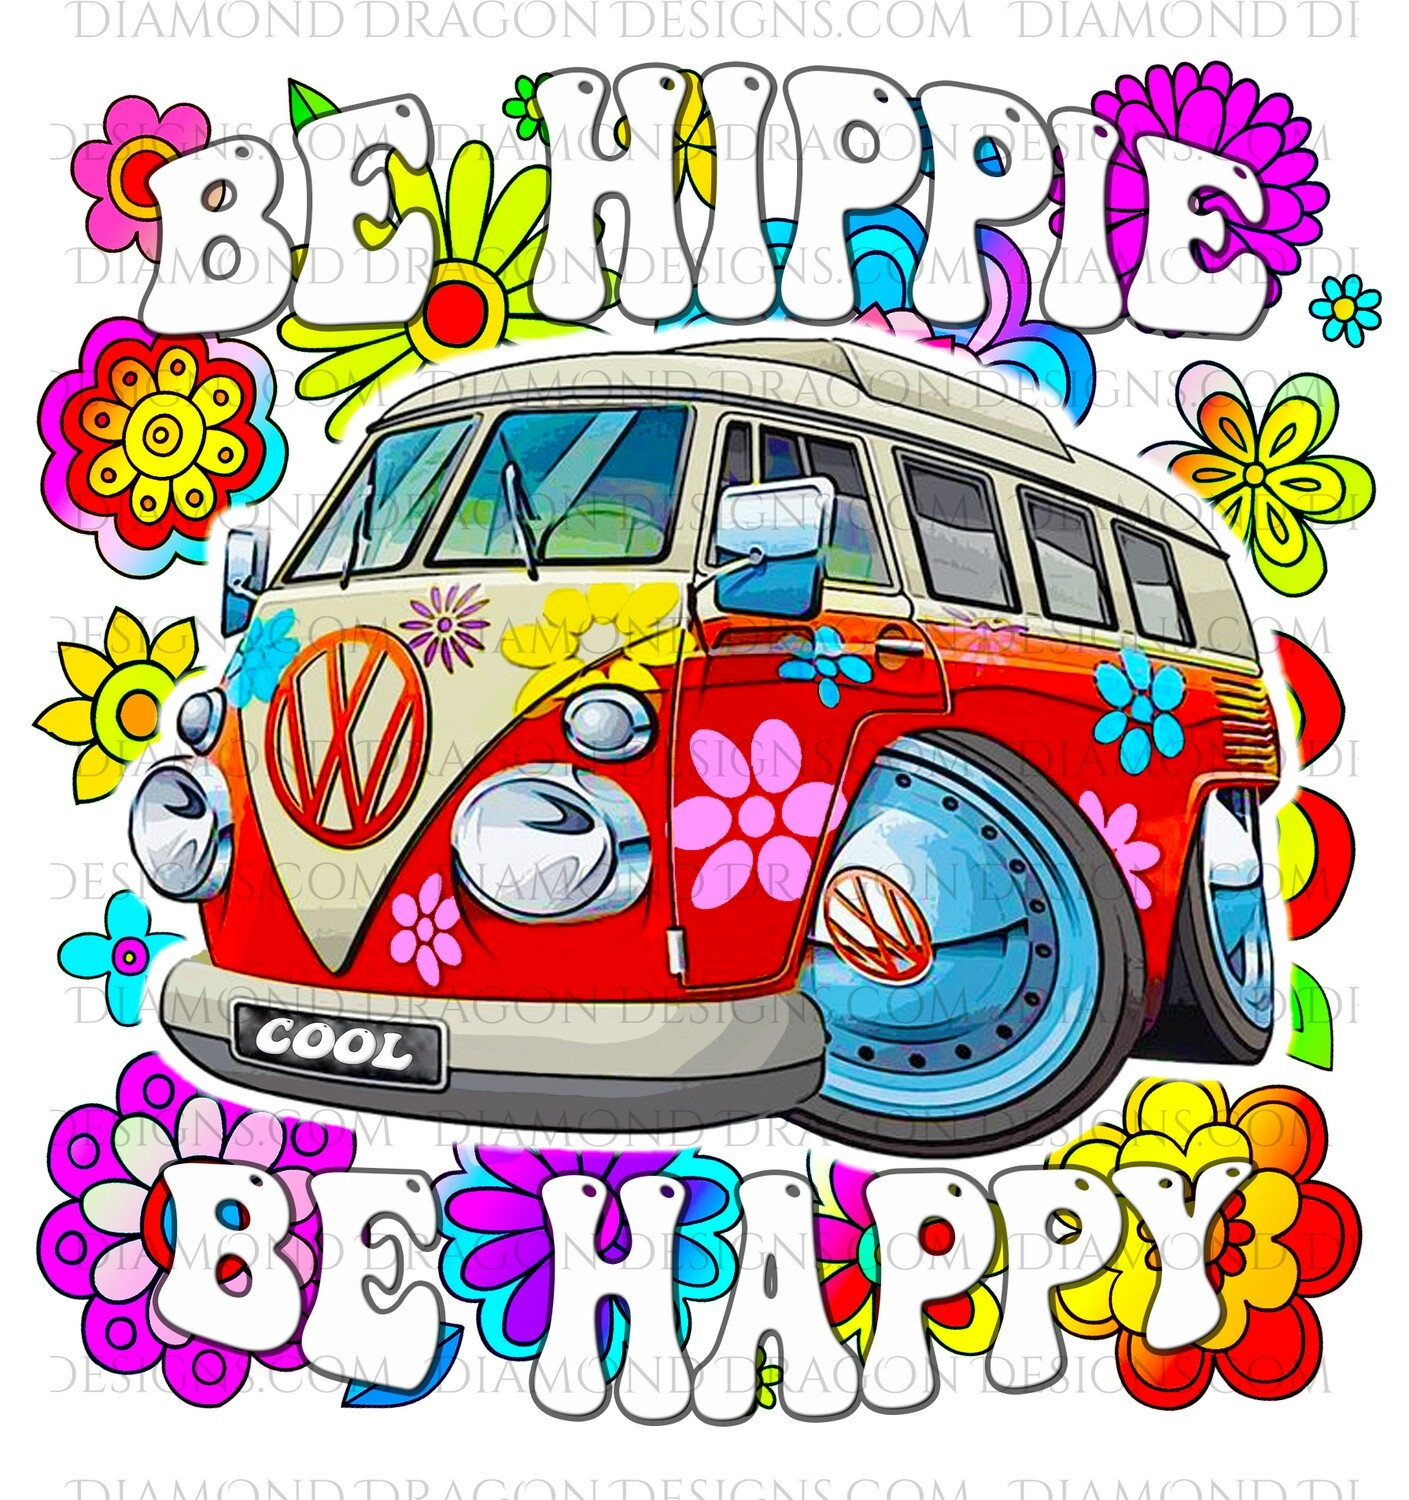 Quotes - Be Hippie, Be Happy, 70s, VW Bus, Retro Red, Digital Image